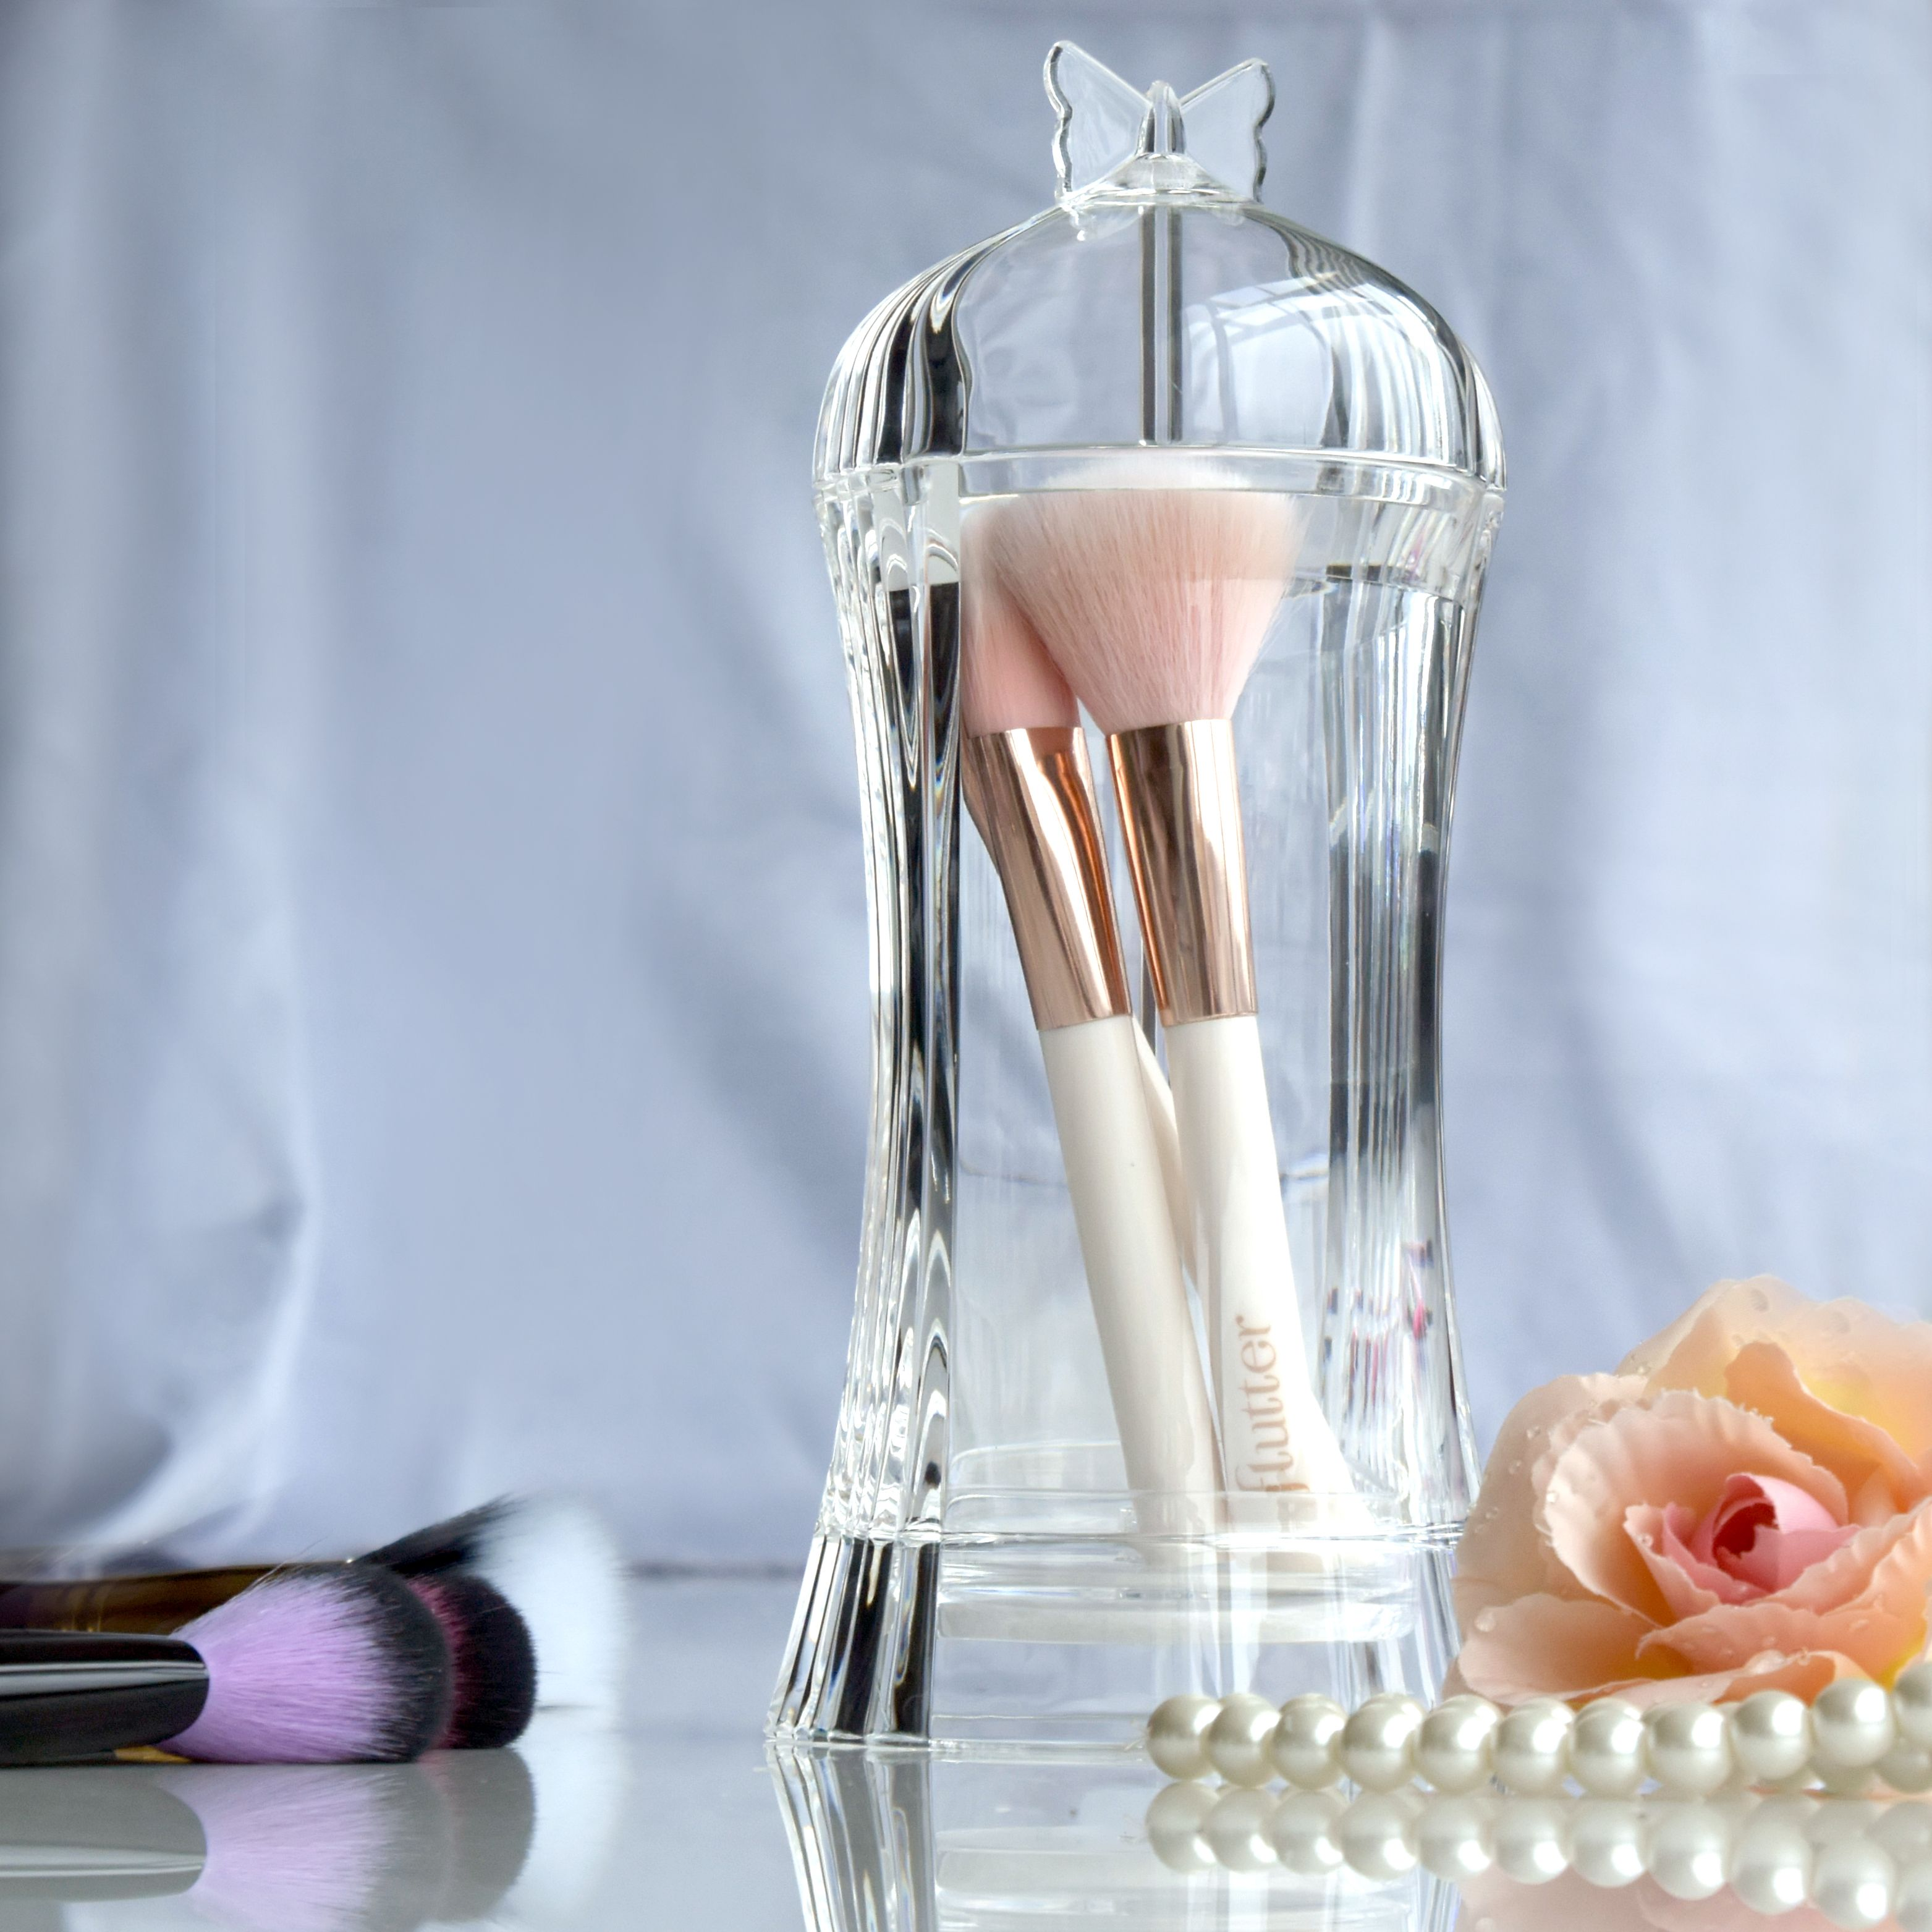 Butterfly Acrylic Makeup Brushes & Brow Pencils Holder w